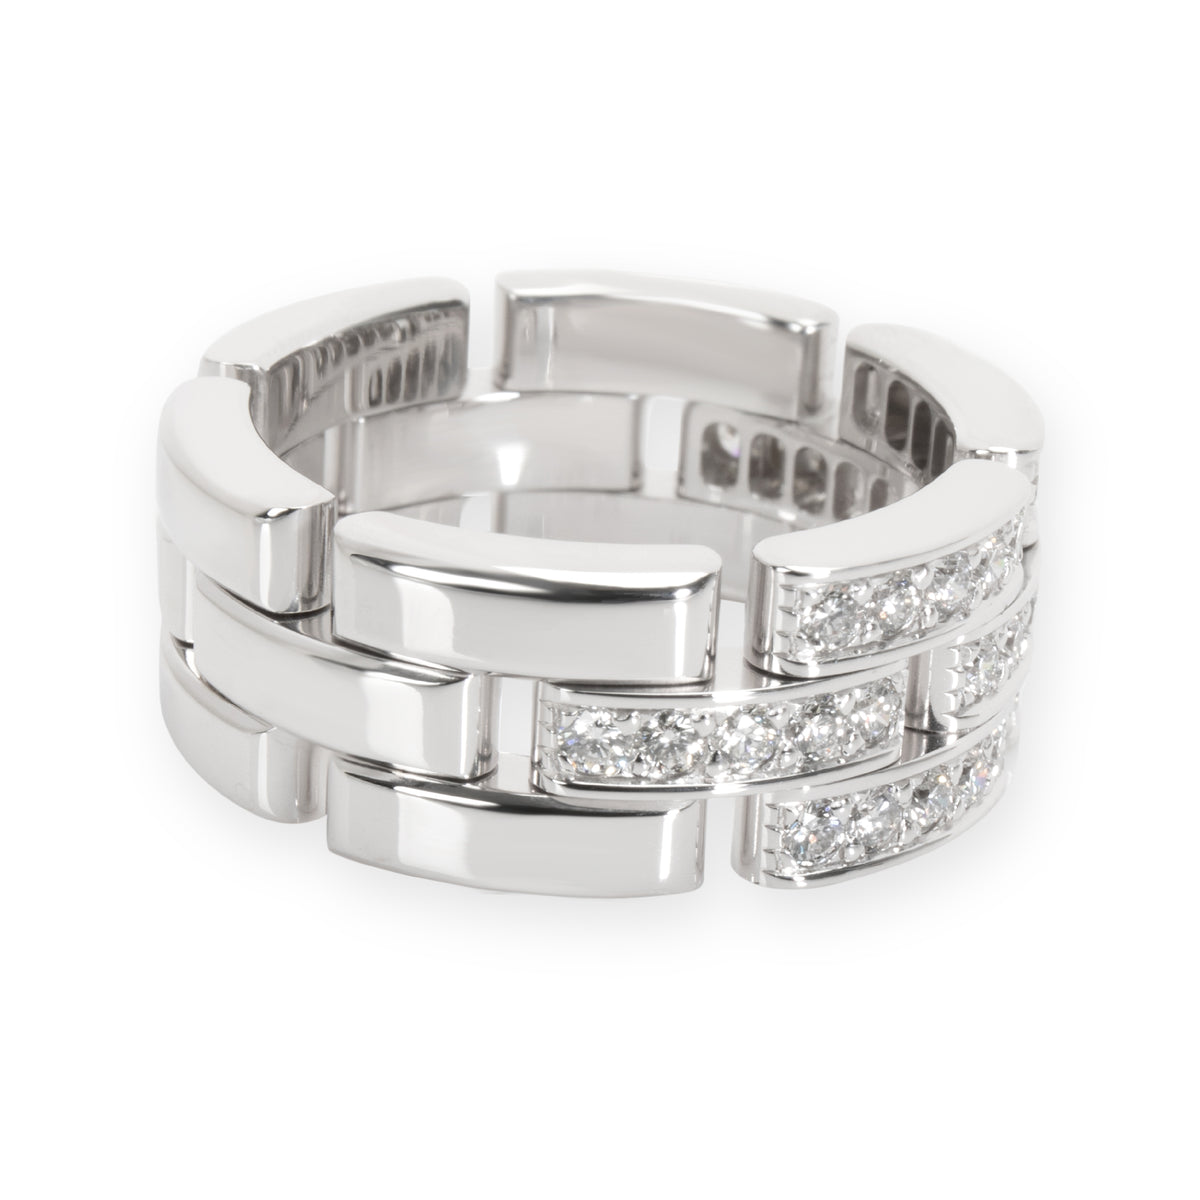 Cartier Maillon Panthere Band in 18KT White Gold 0.53 CTW